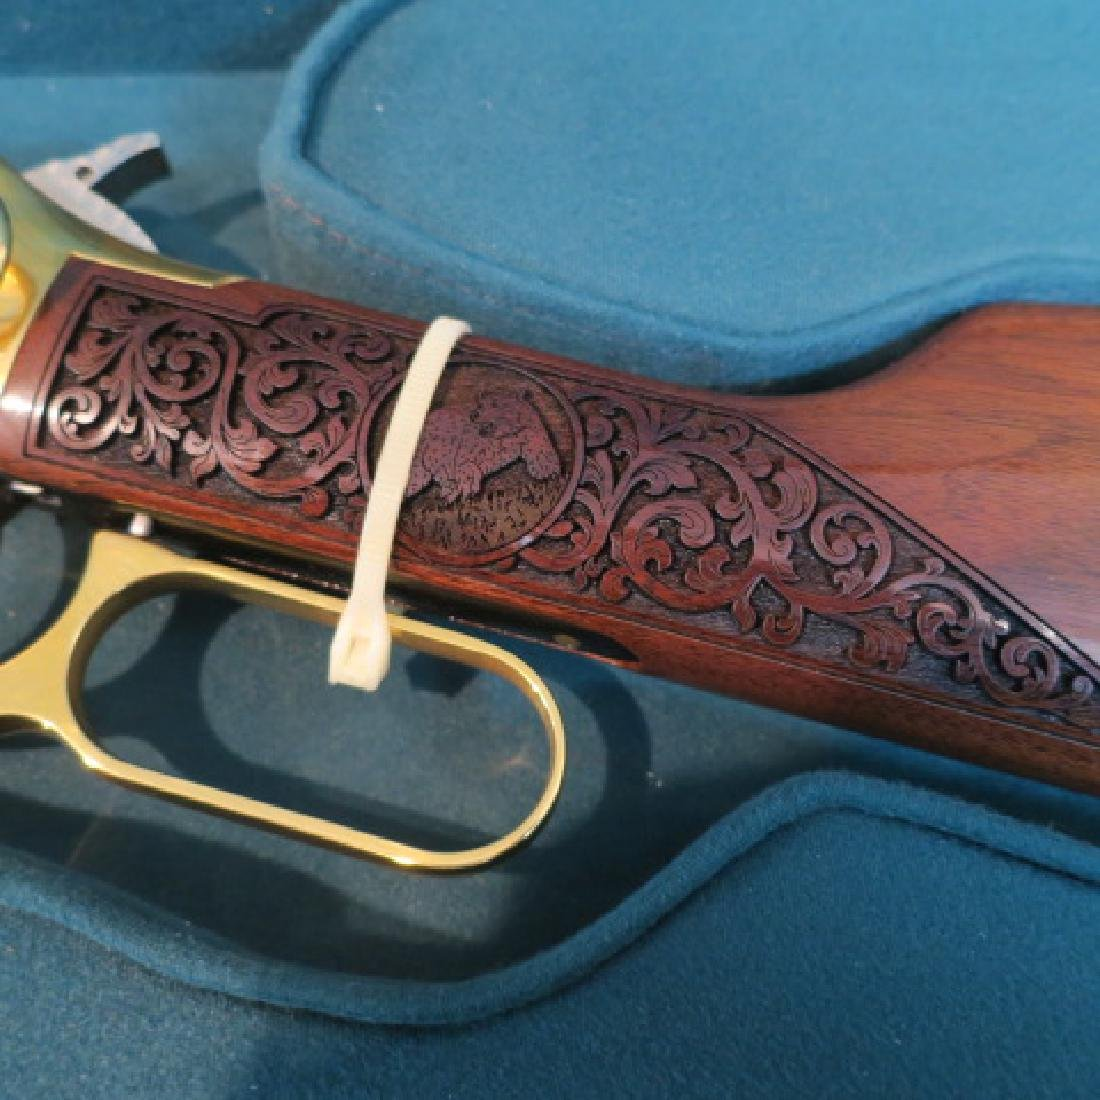 INVESTMENT ARMS, TAZEWELL COUNTY VA, WINCHESTER 94AE: - 9